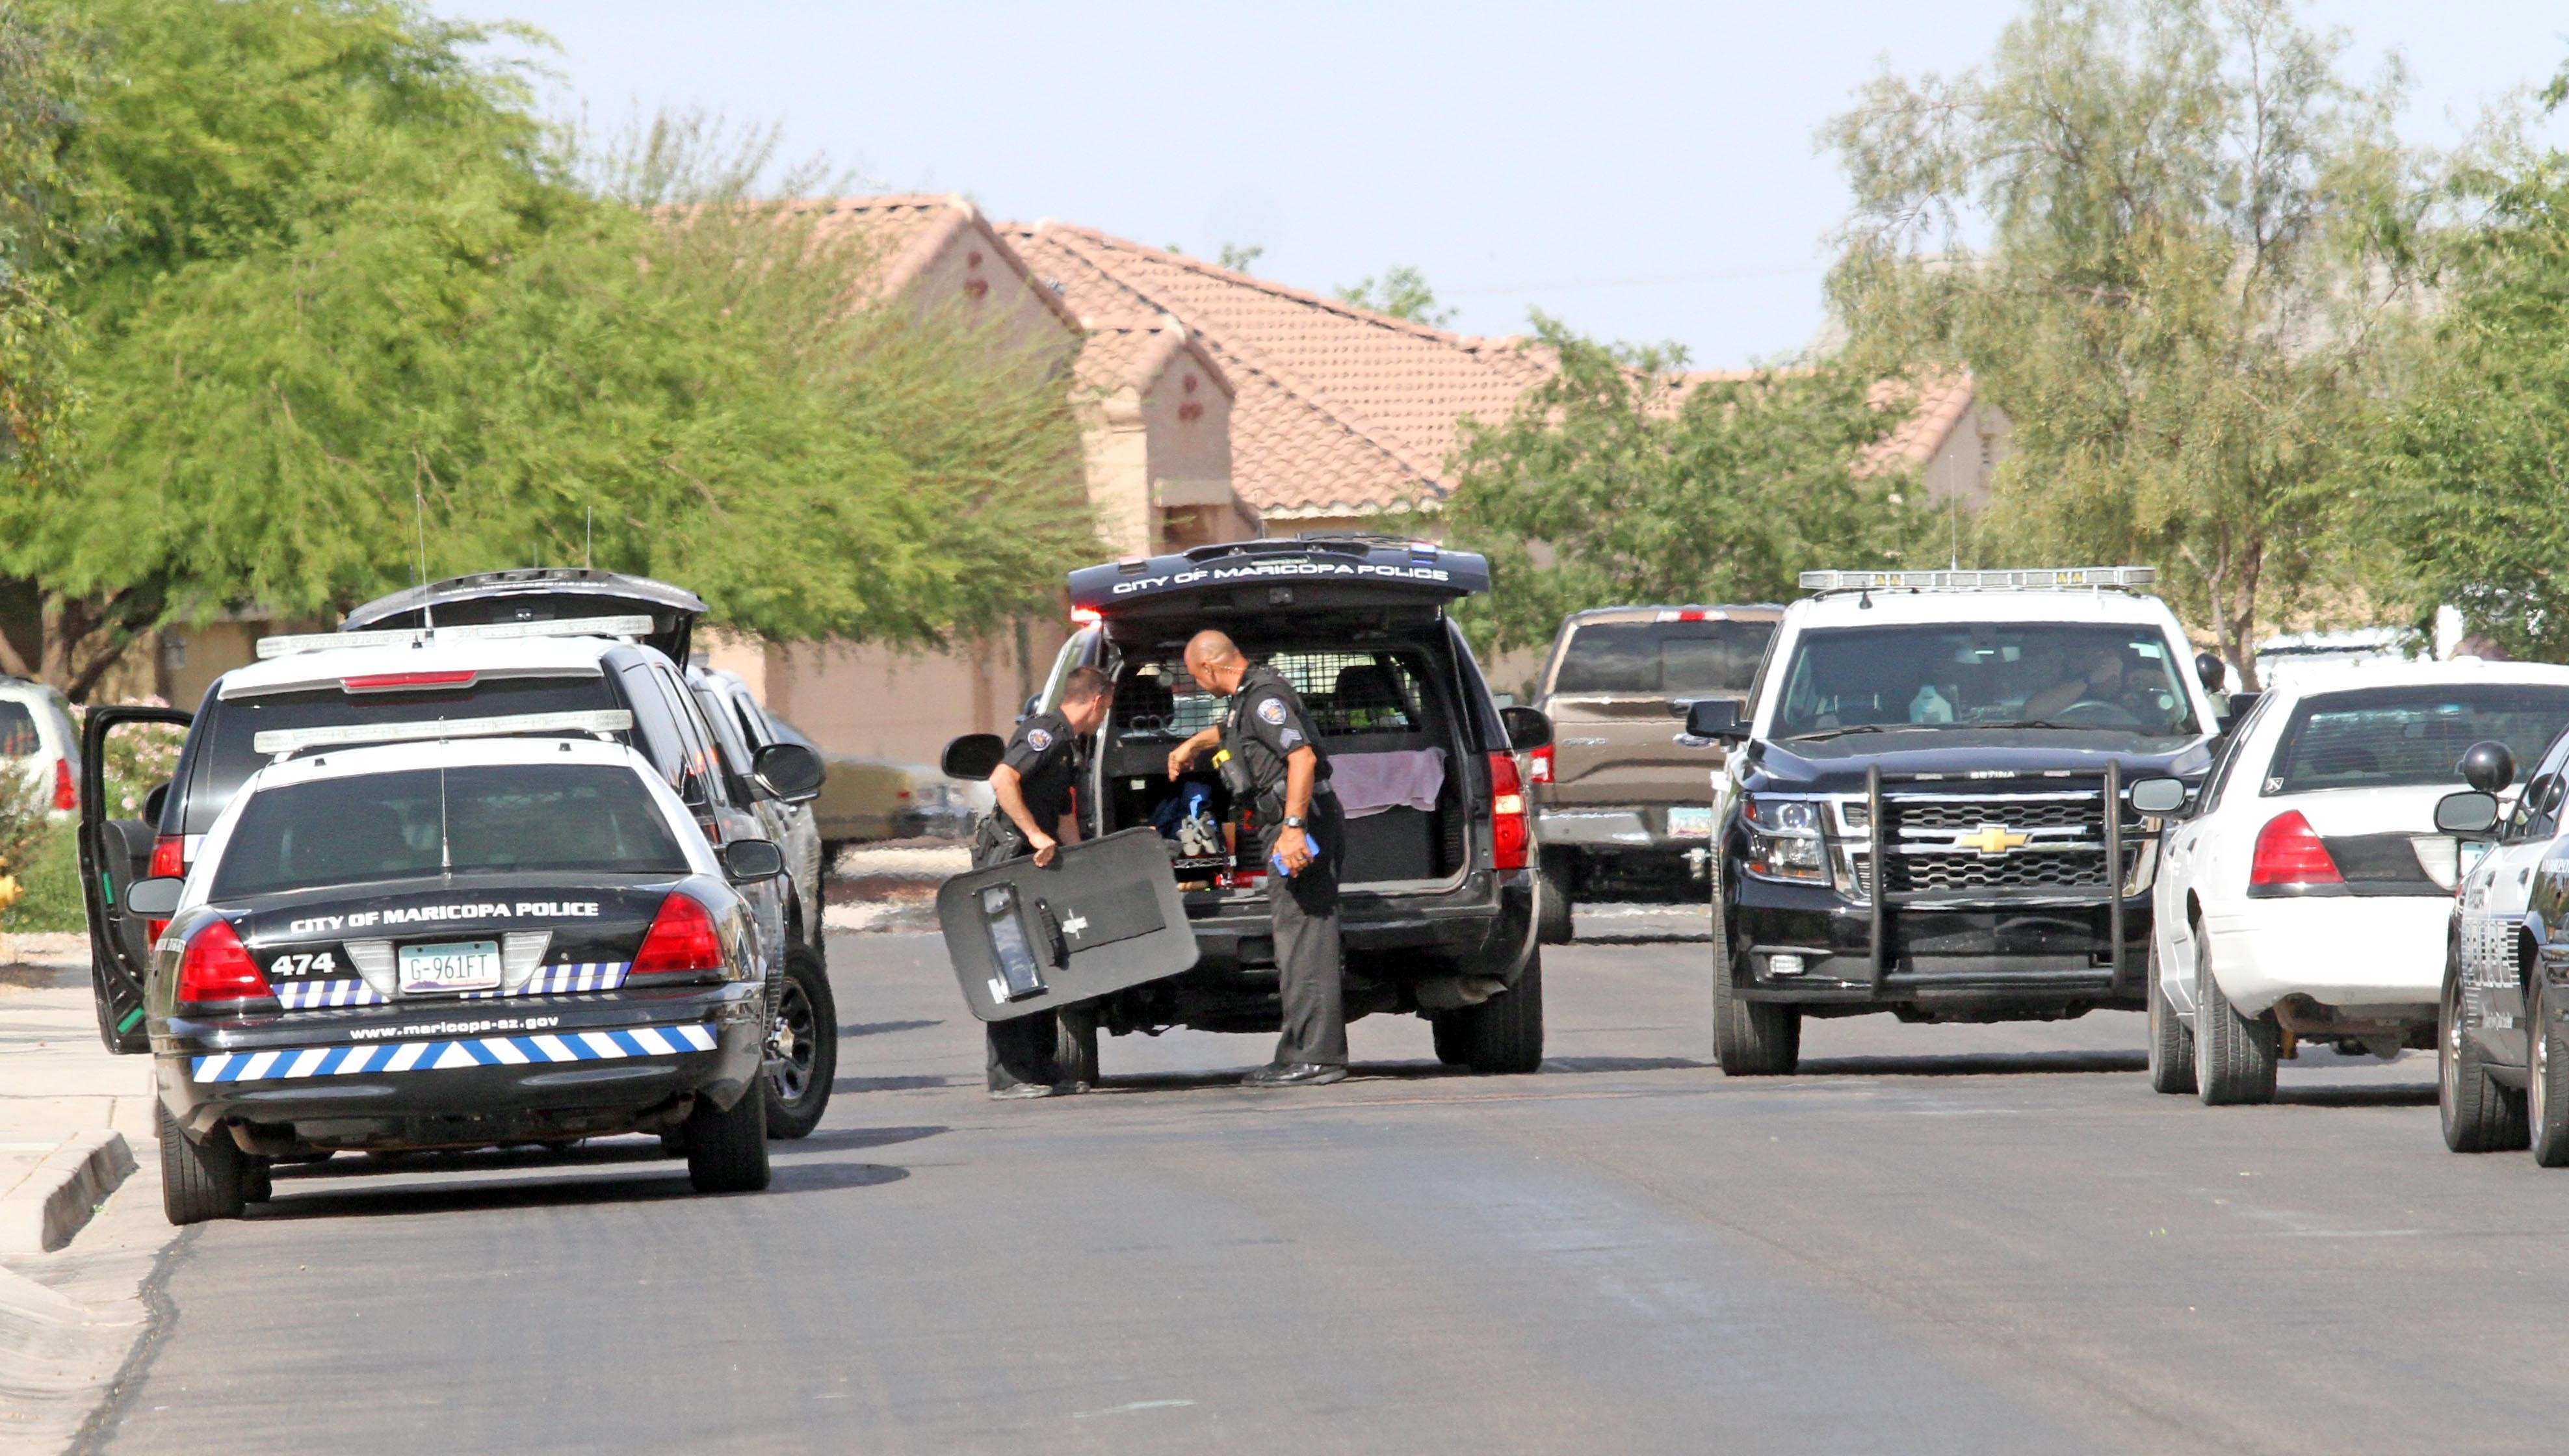 A couple was found dead of an apparent murder-suicide in Maricopa. (Source: Photos by Howard WaGGner/News of Maricopa)